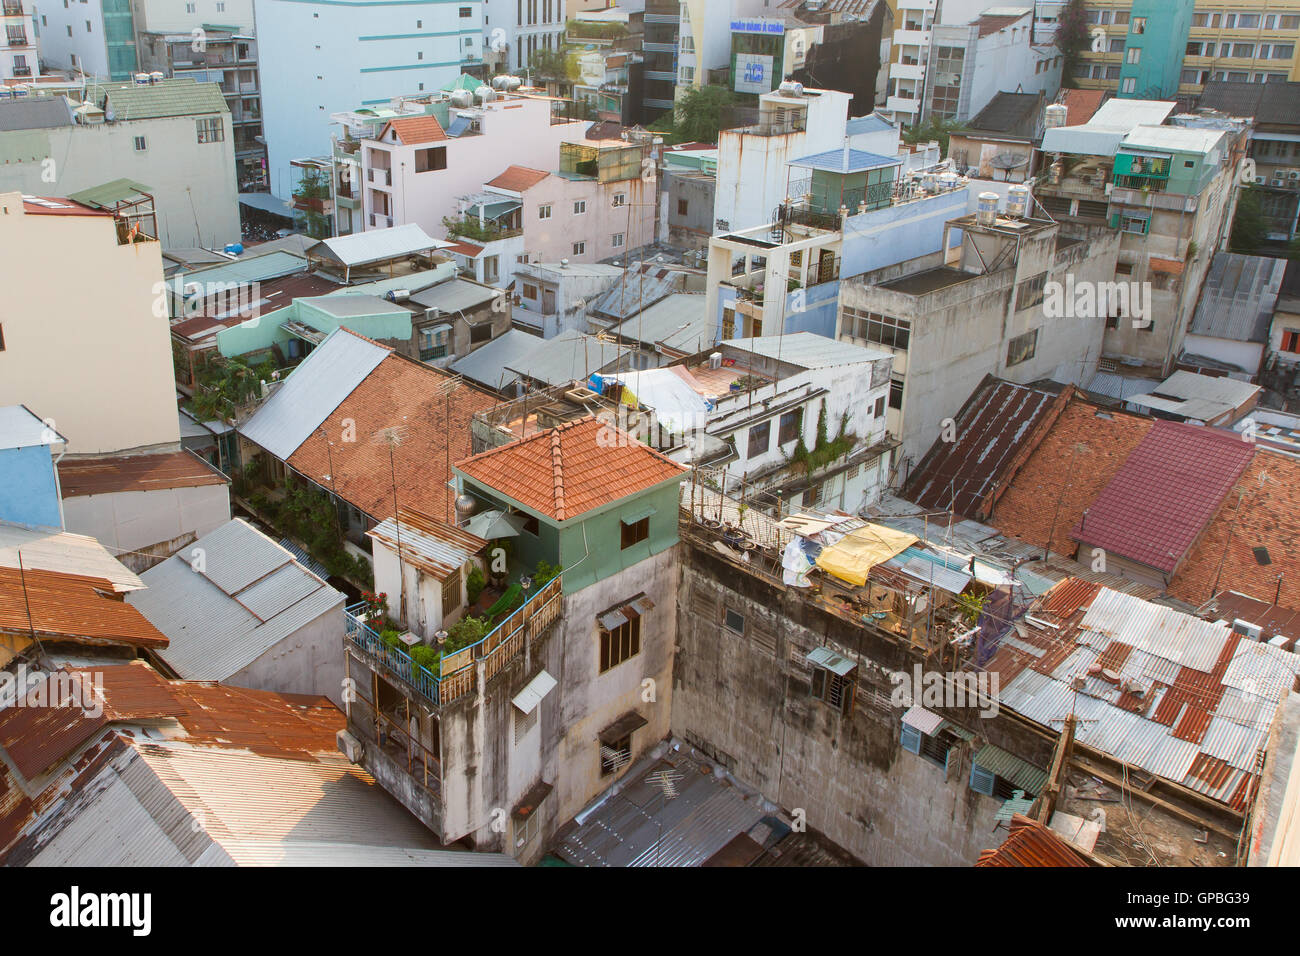 Part of the non commercial skyline of Ho Chi Minh City (Saigon) - Stock Image